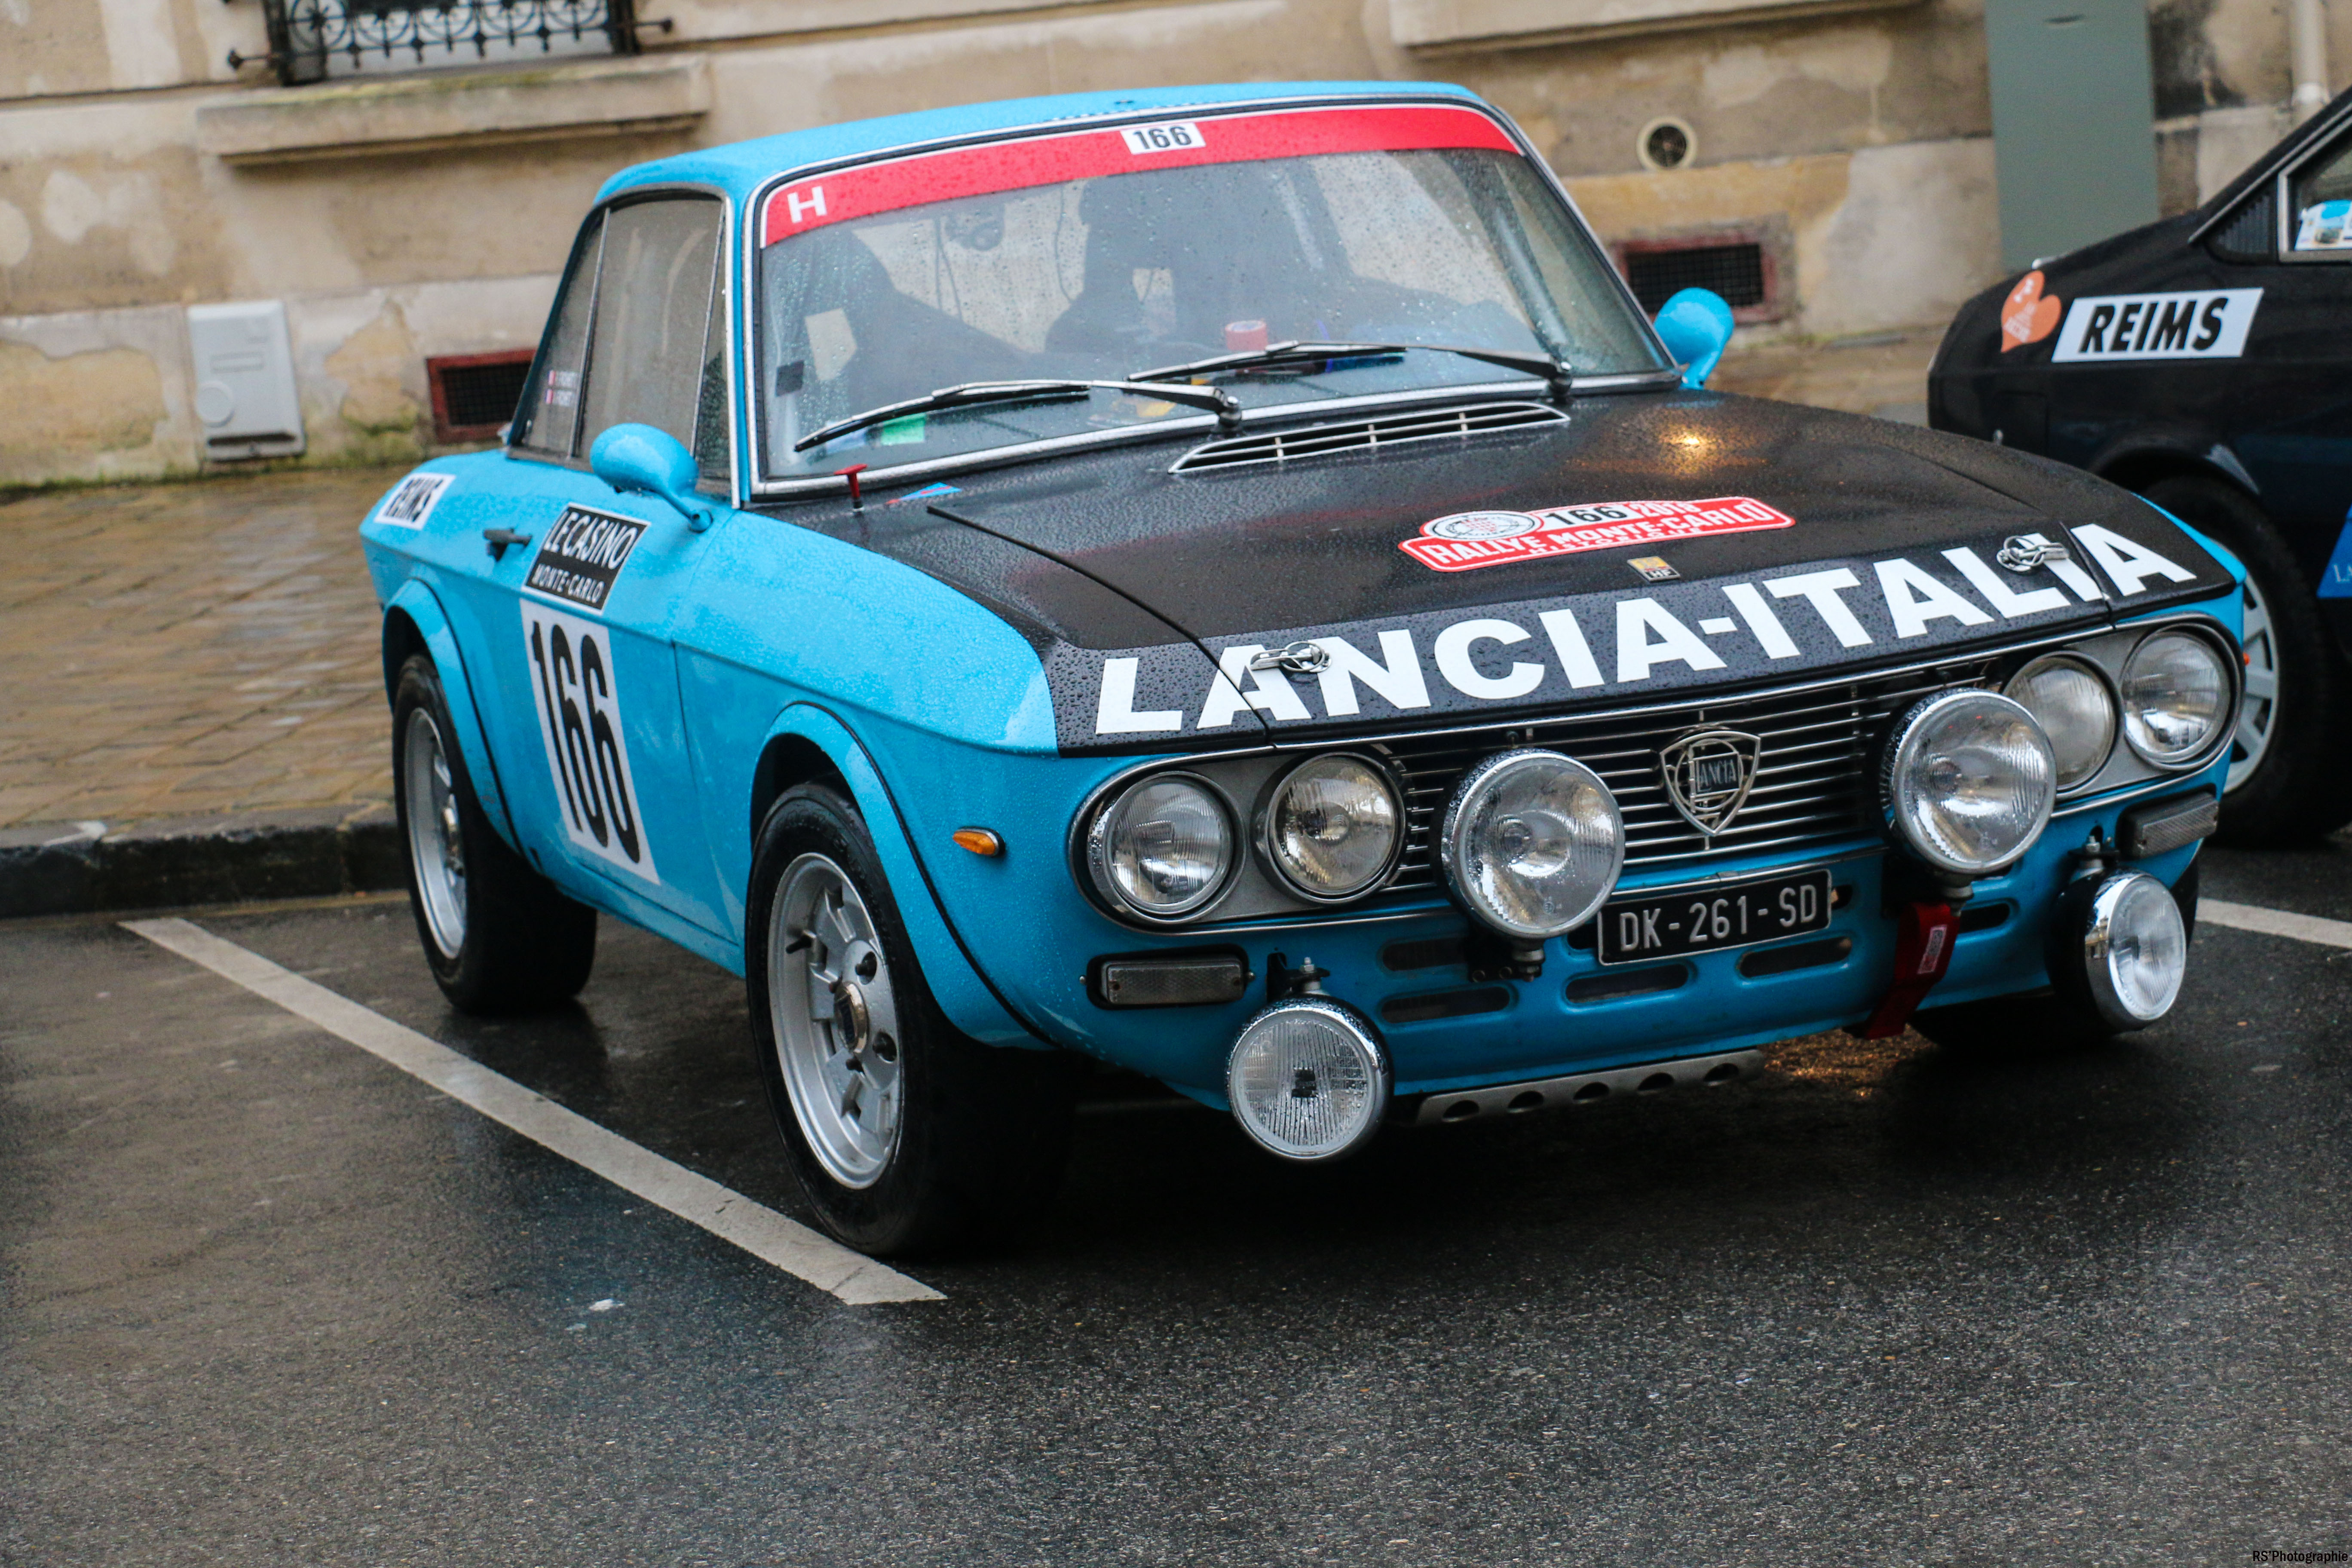 Lancia-Fulvia-1600-HF-avant-front-Arnaud Demasier-RSPhotographie